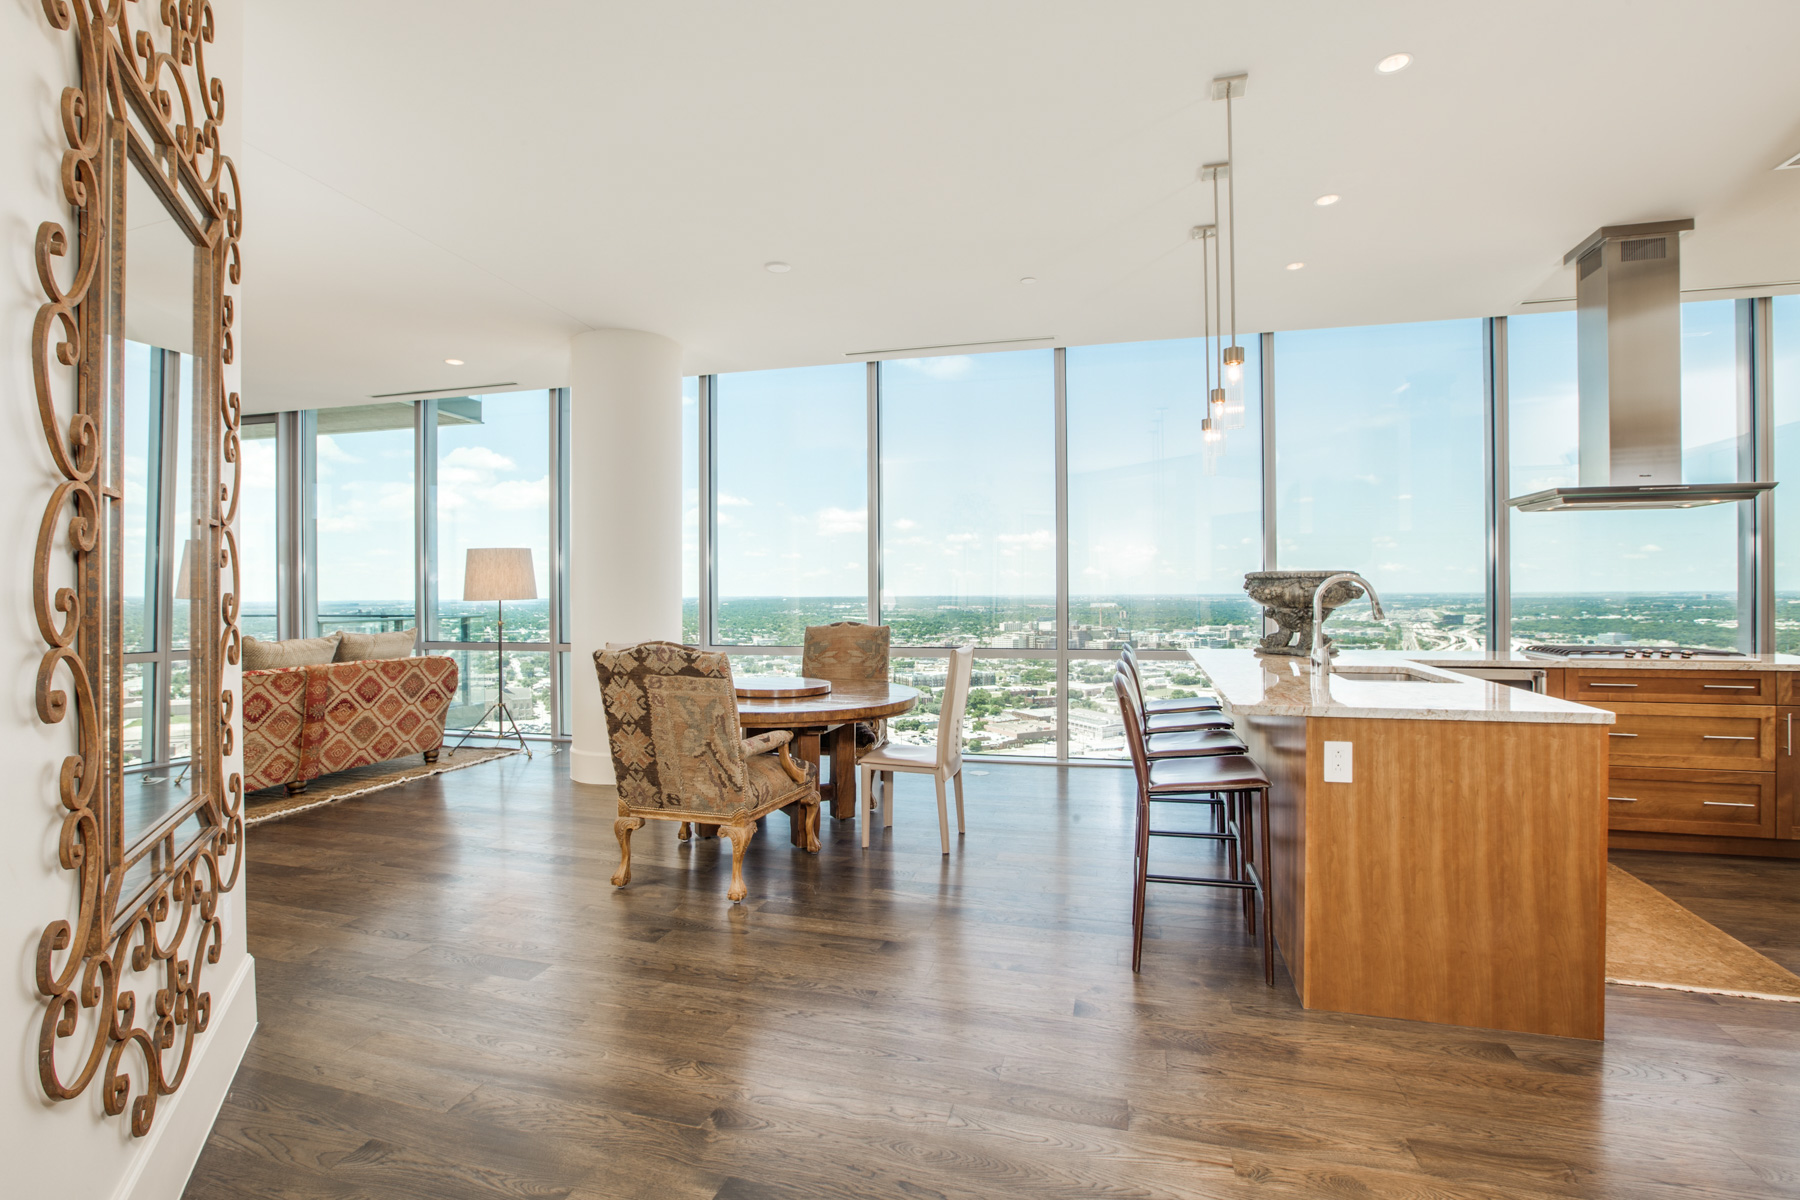 Condominium for Sale at Amazing Views from this Premier Fort Worth Downtown Condo 1301 Throckmorton Street #3004 Fort Worth, Texas 76102 United States